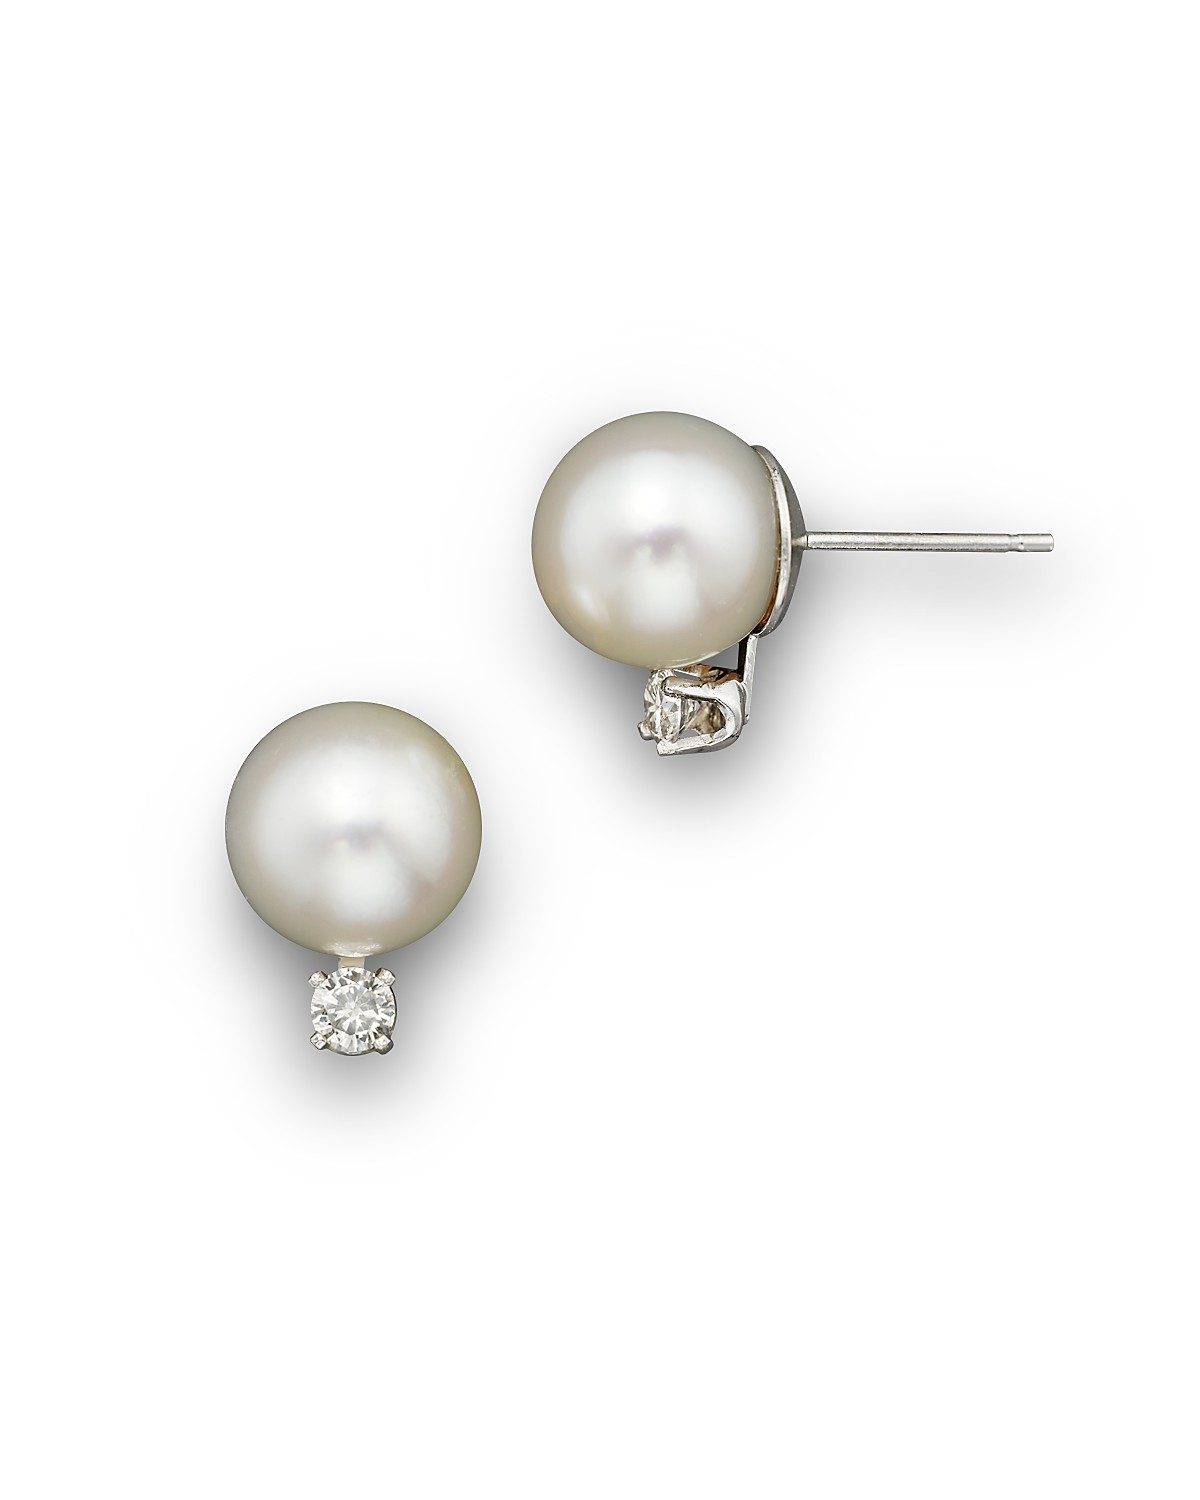 silver products jewelry edge with pearl stud a ardissi black earrings